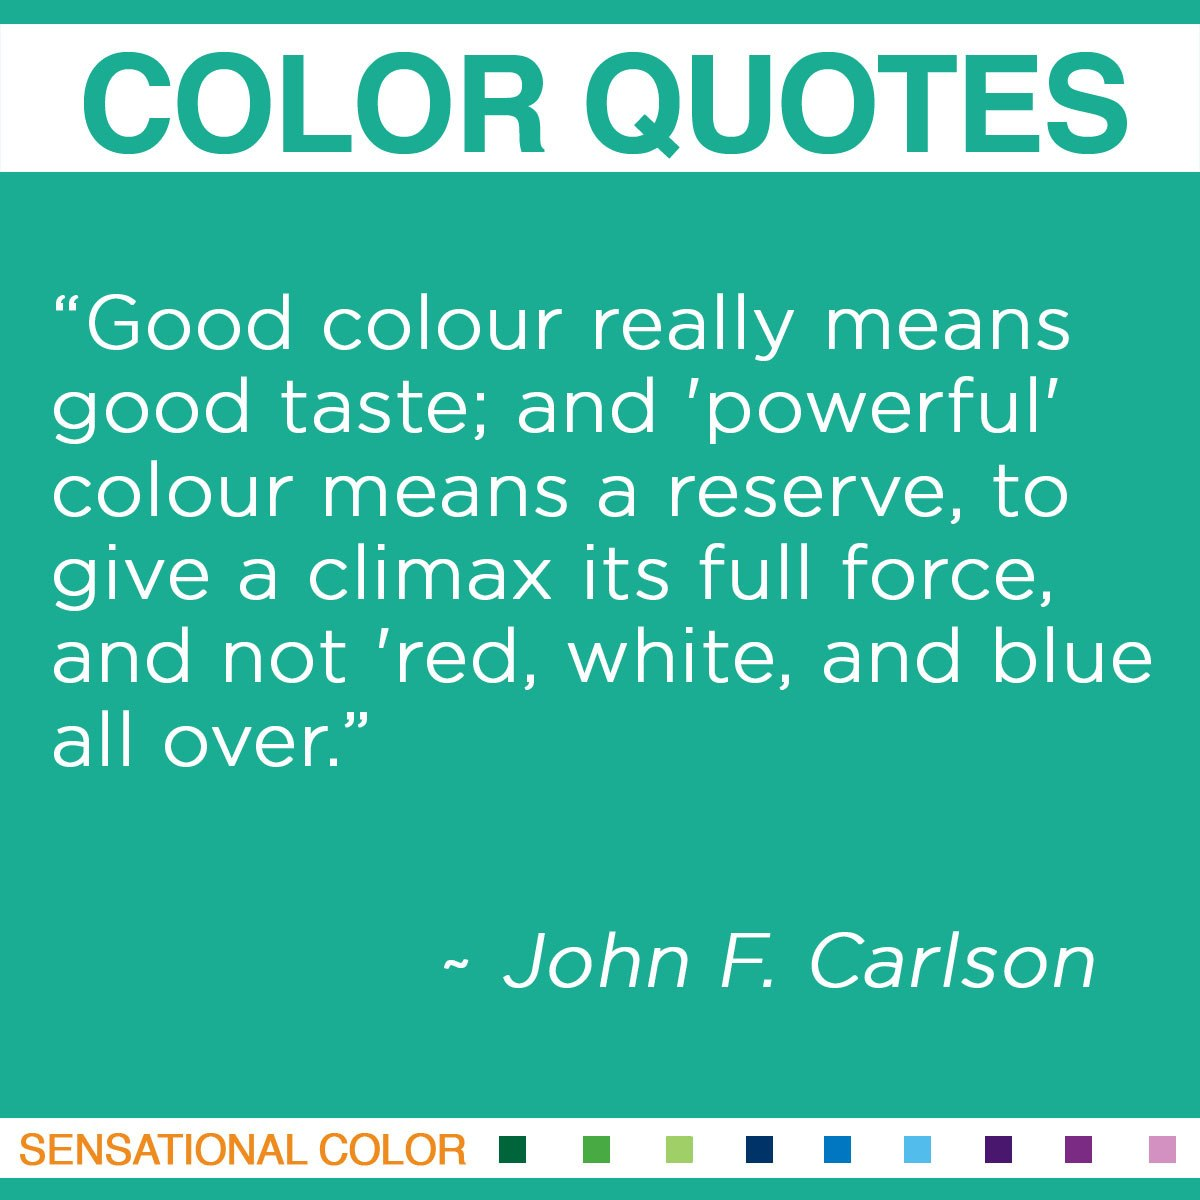 Carlson Quotes About Color